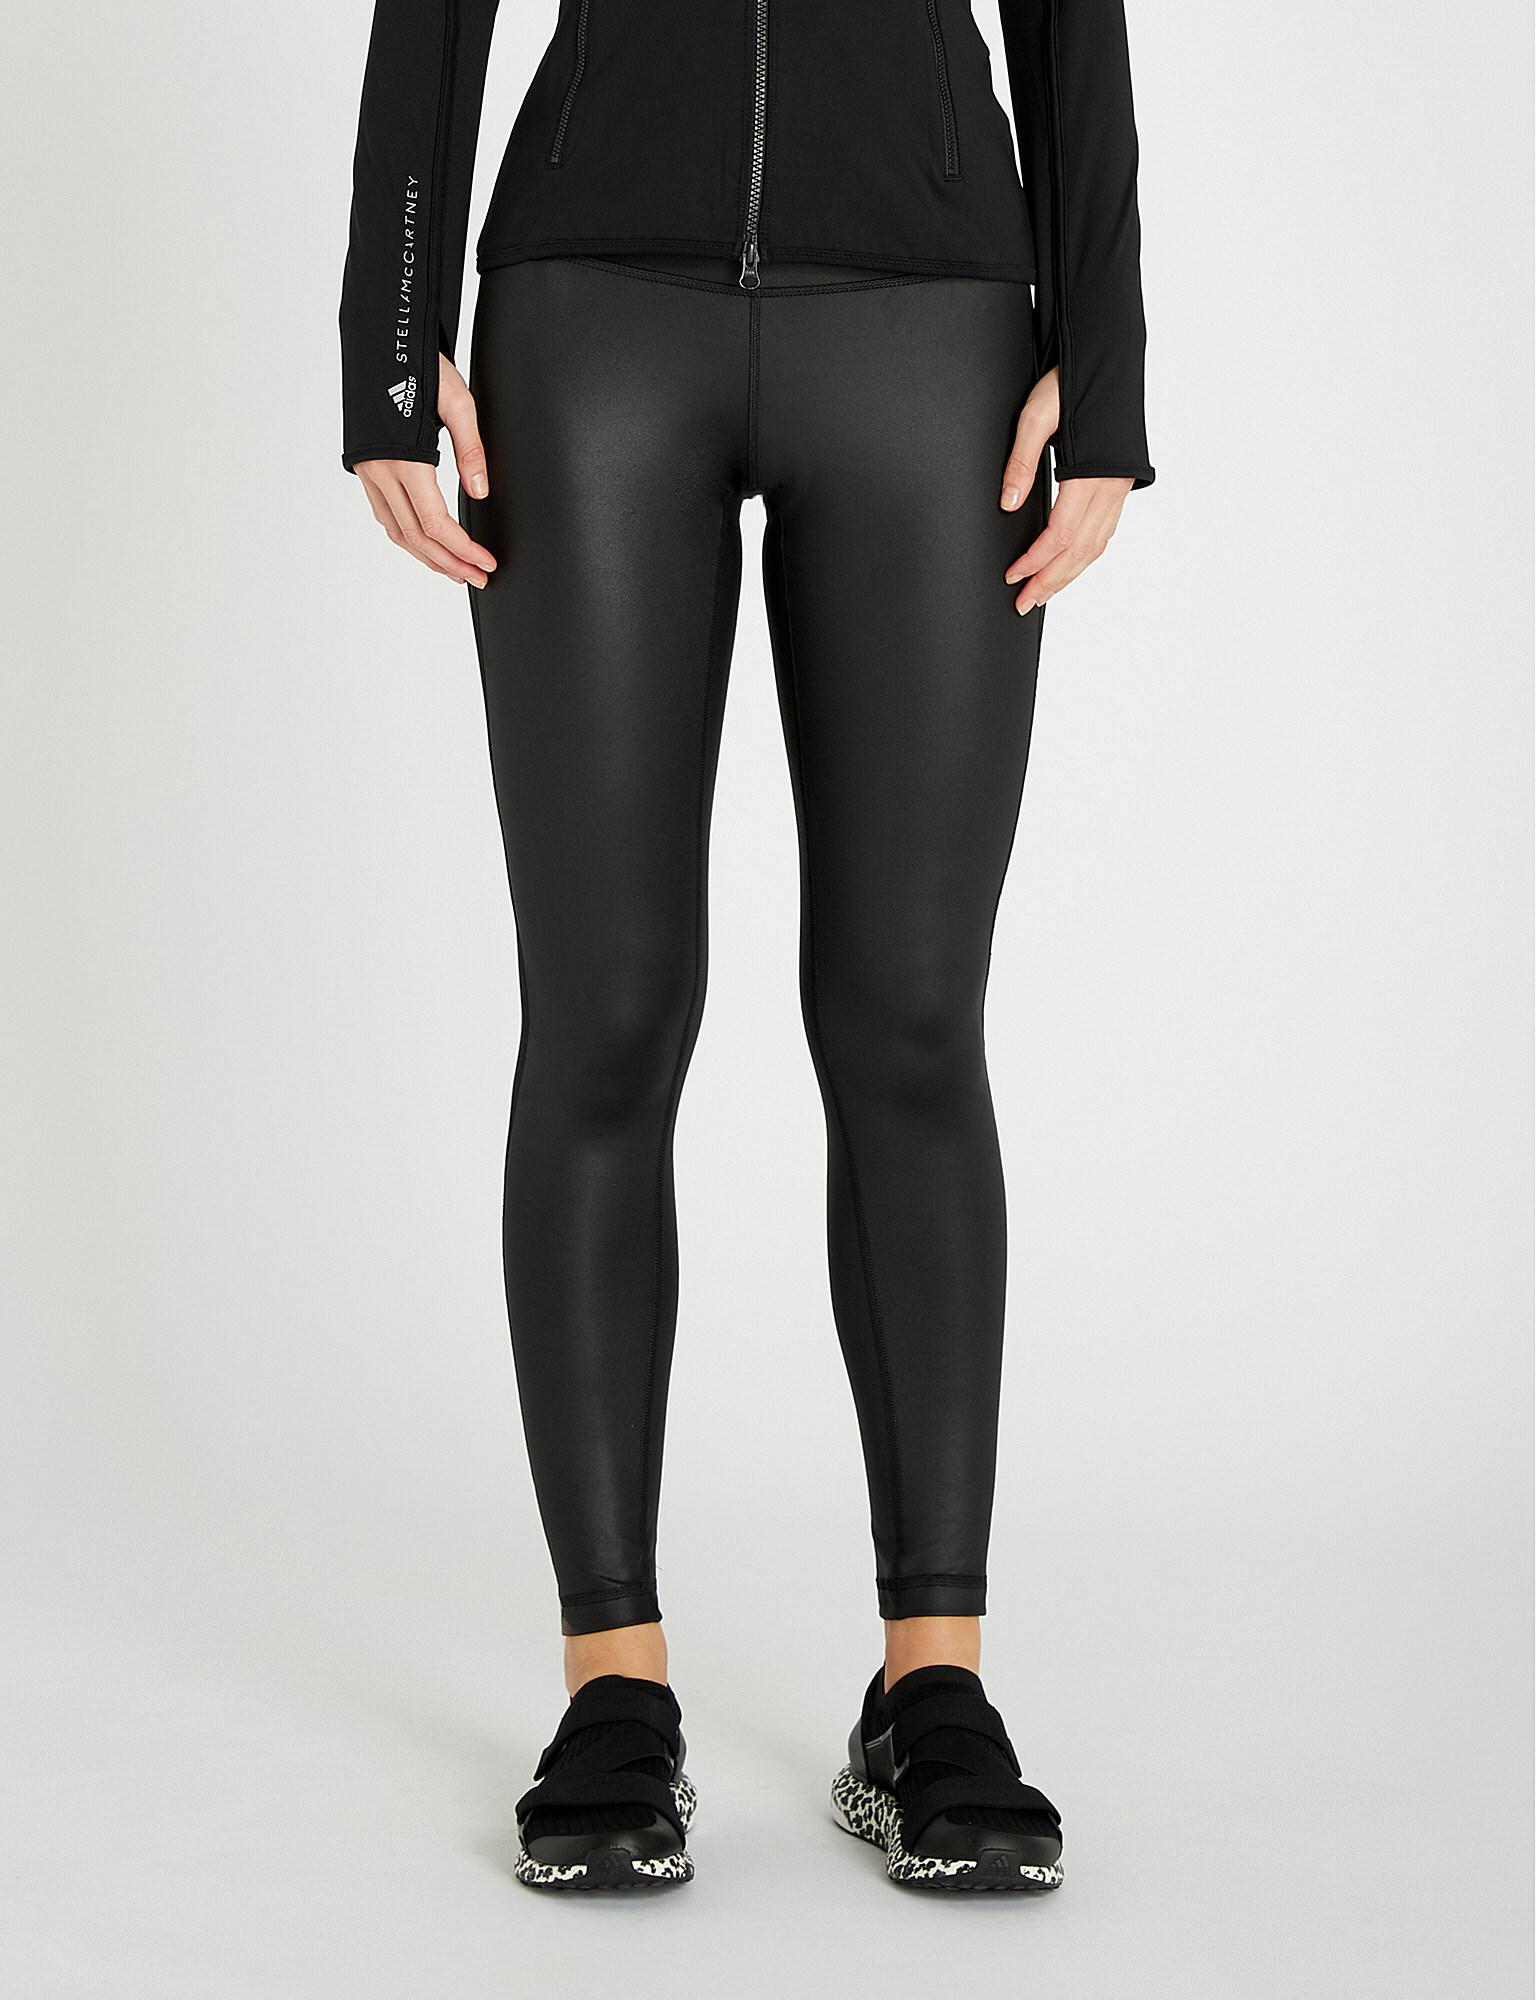 c7f1dac007675 adidas Originals. Women's Black Believe This Mesh-panel Stretch-jersey  leggings